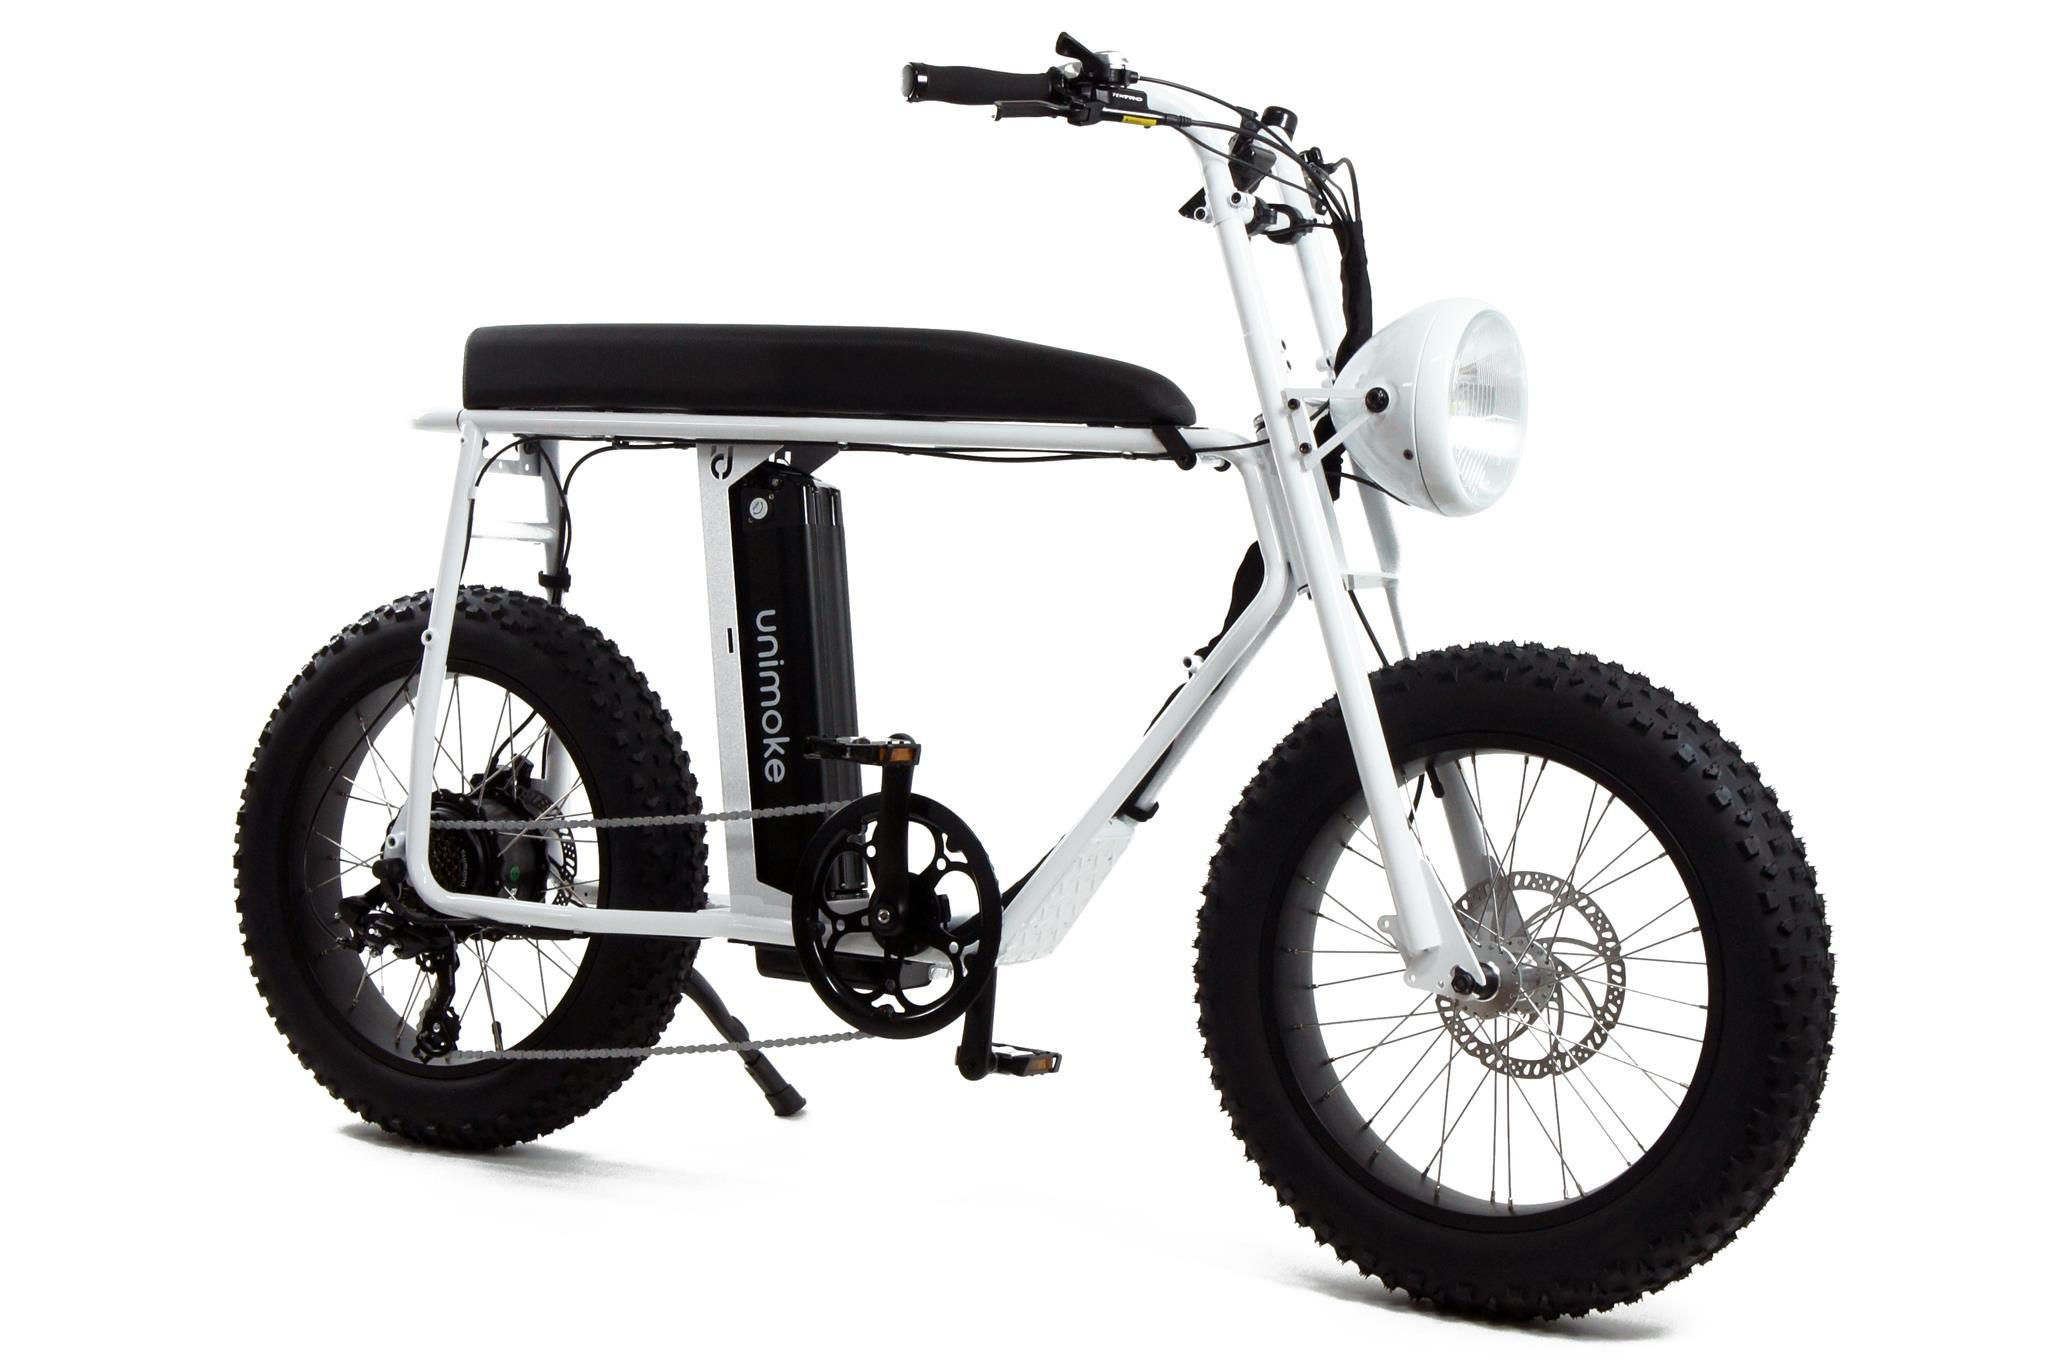 UNIMOKE Electric Bike: Features and Specifications